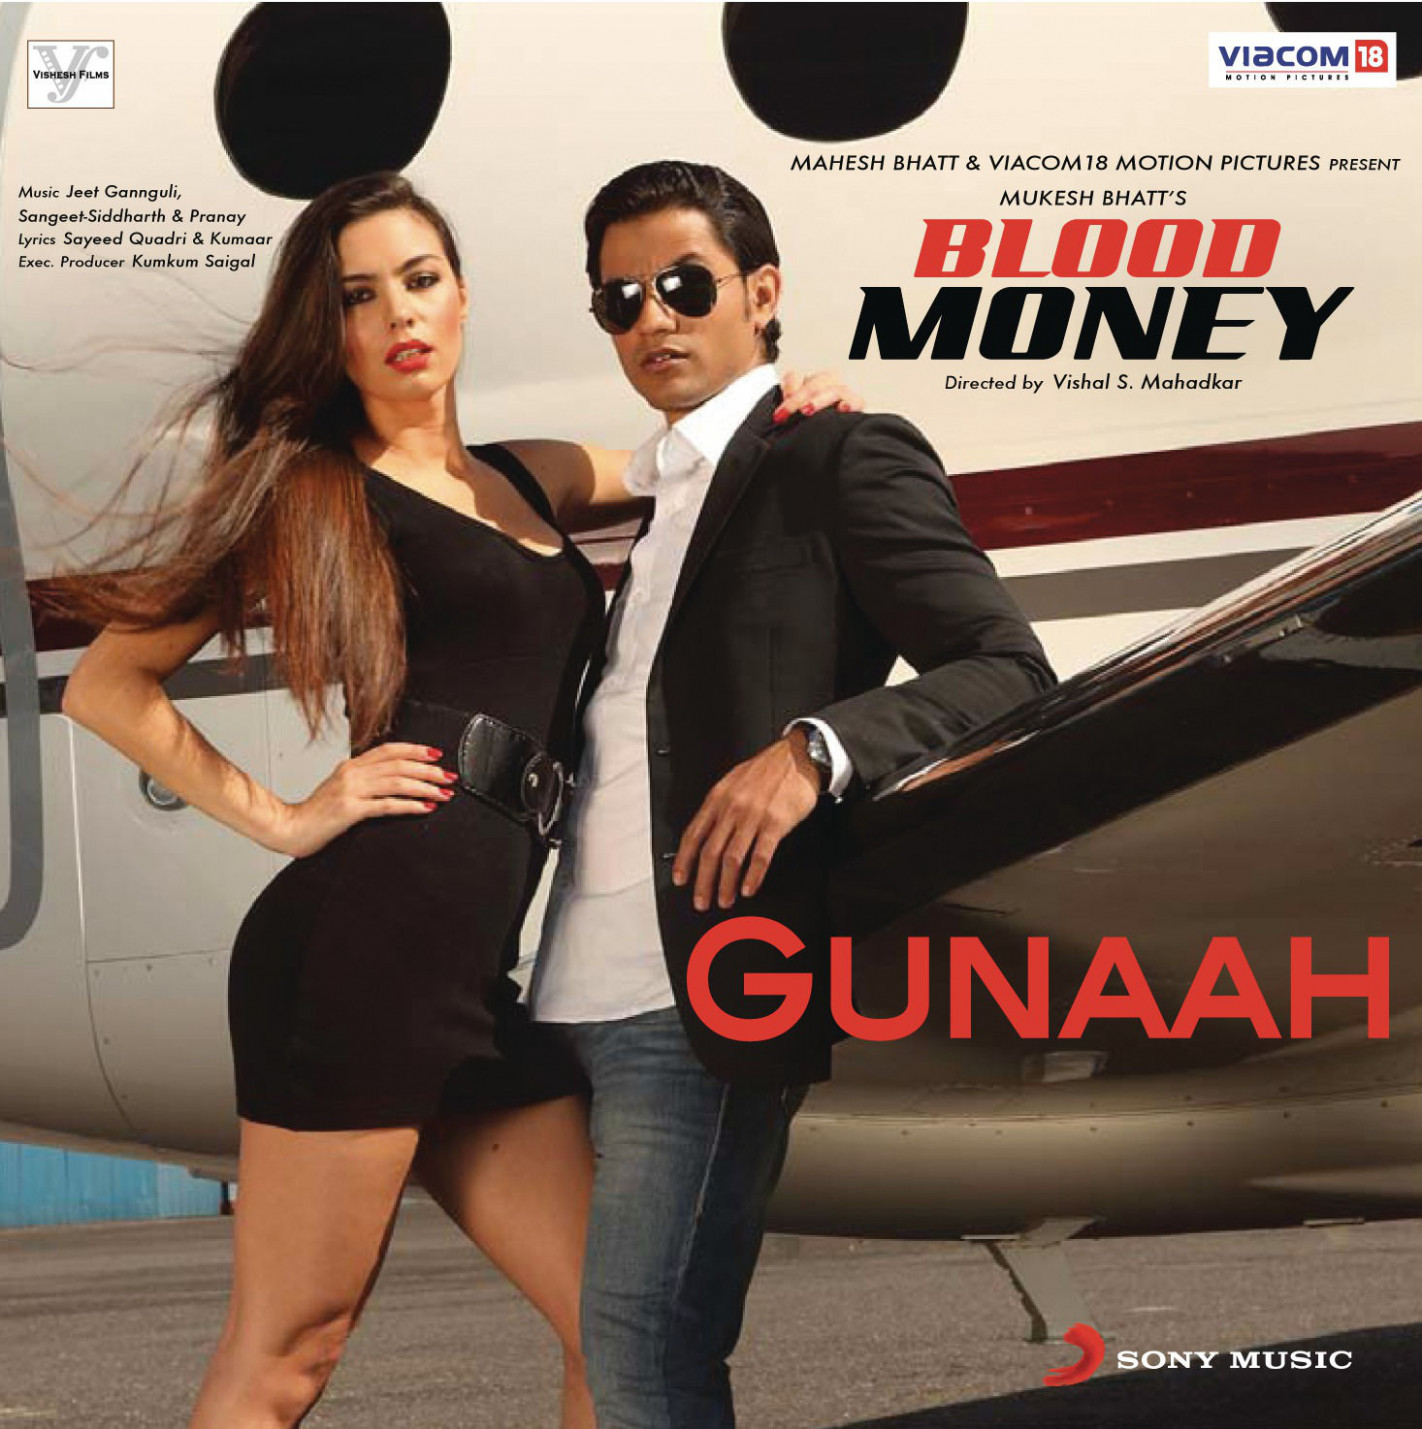 Gunaah Movie Songs Pk Free Download - cuicrimeab-mp3 - bollywood songs free download